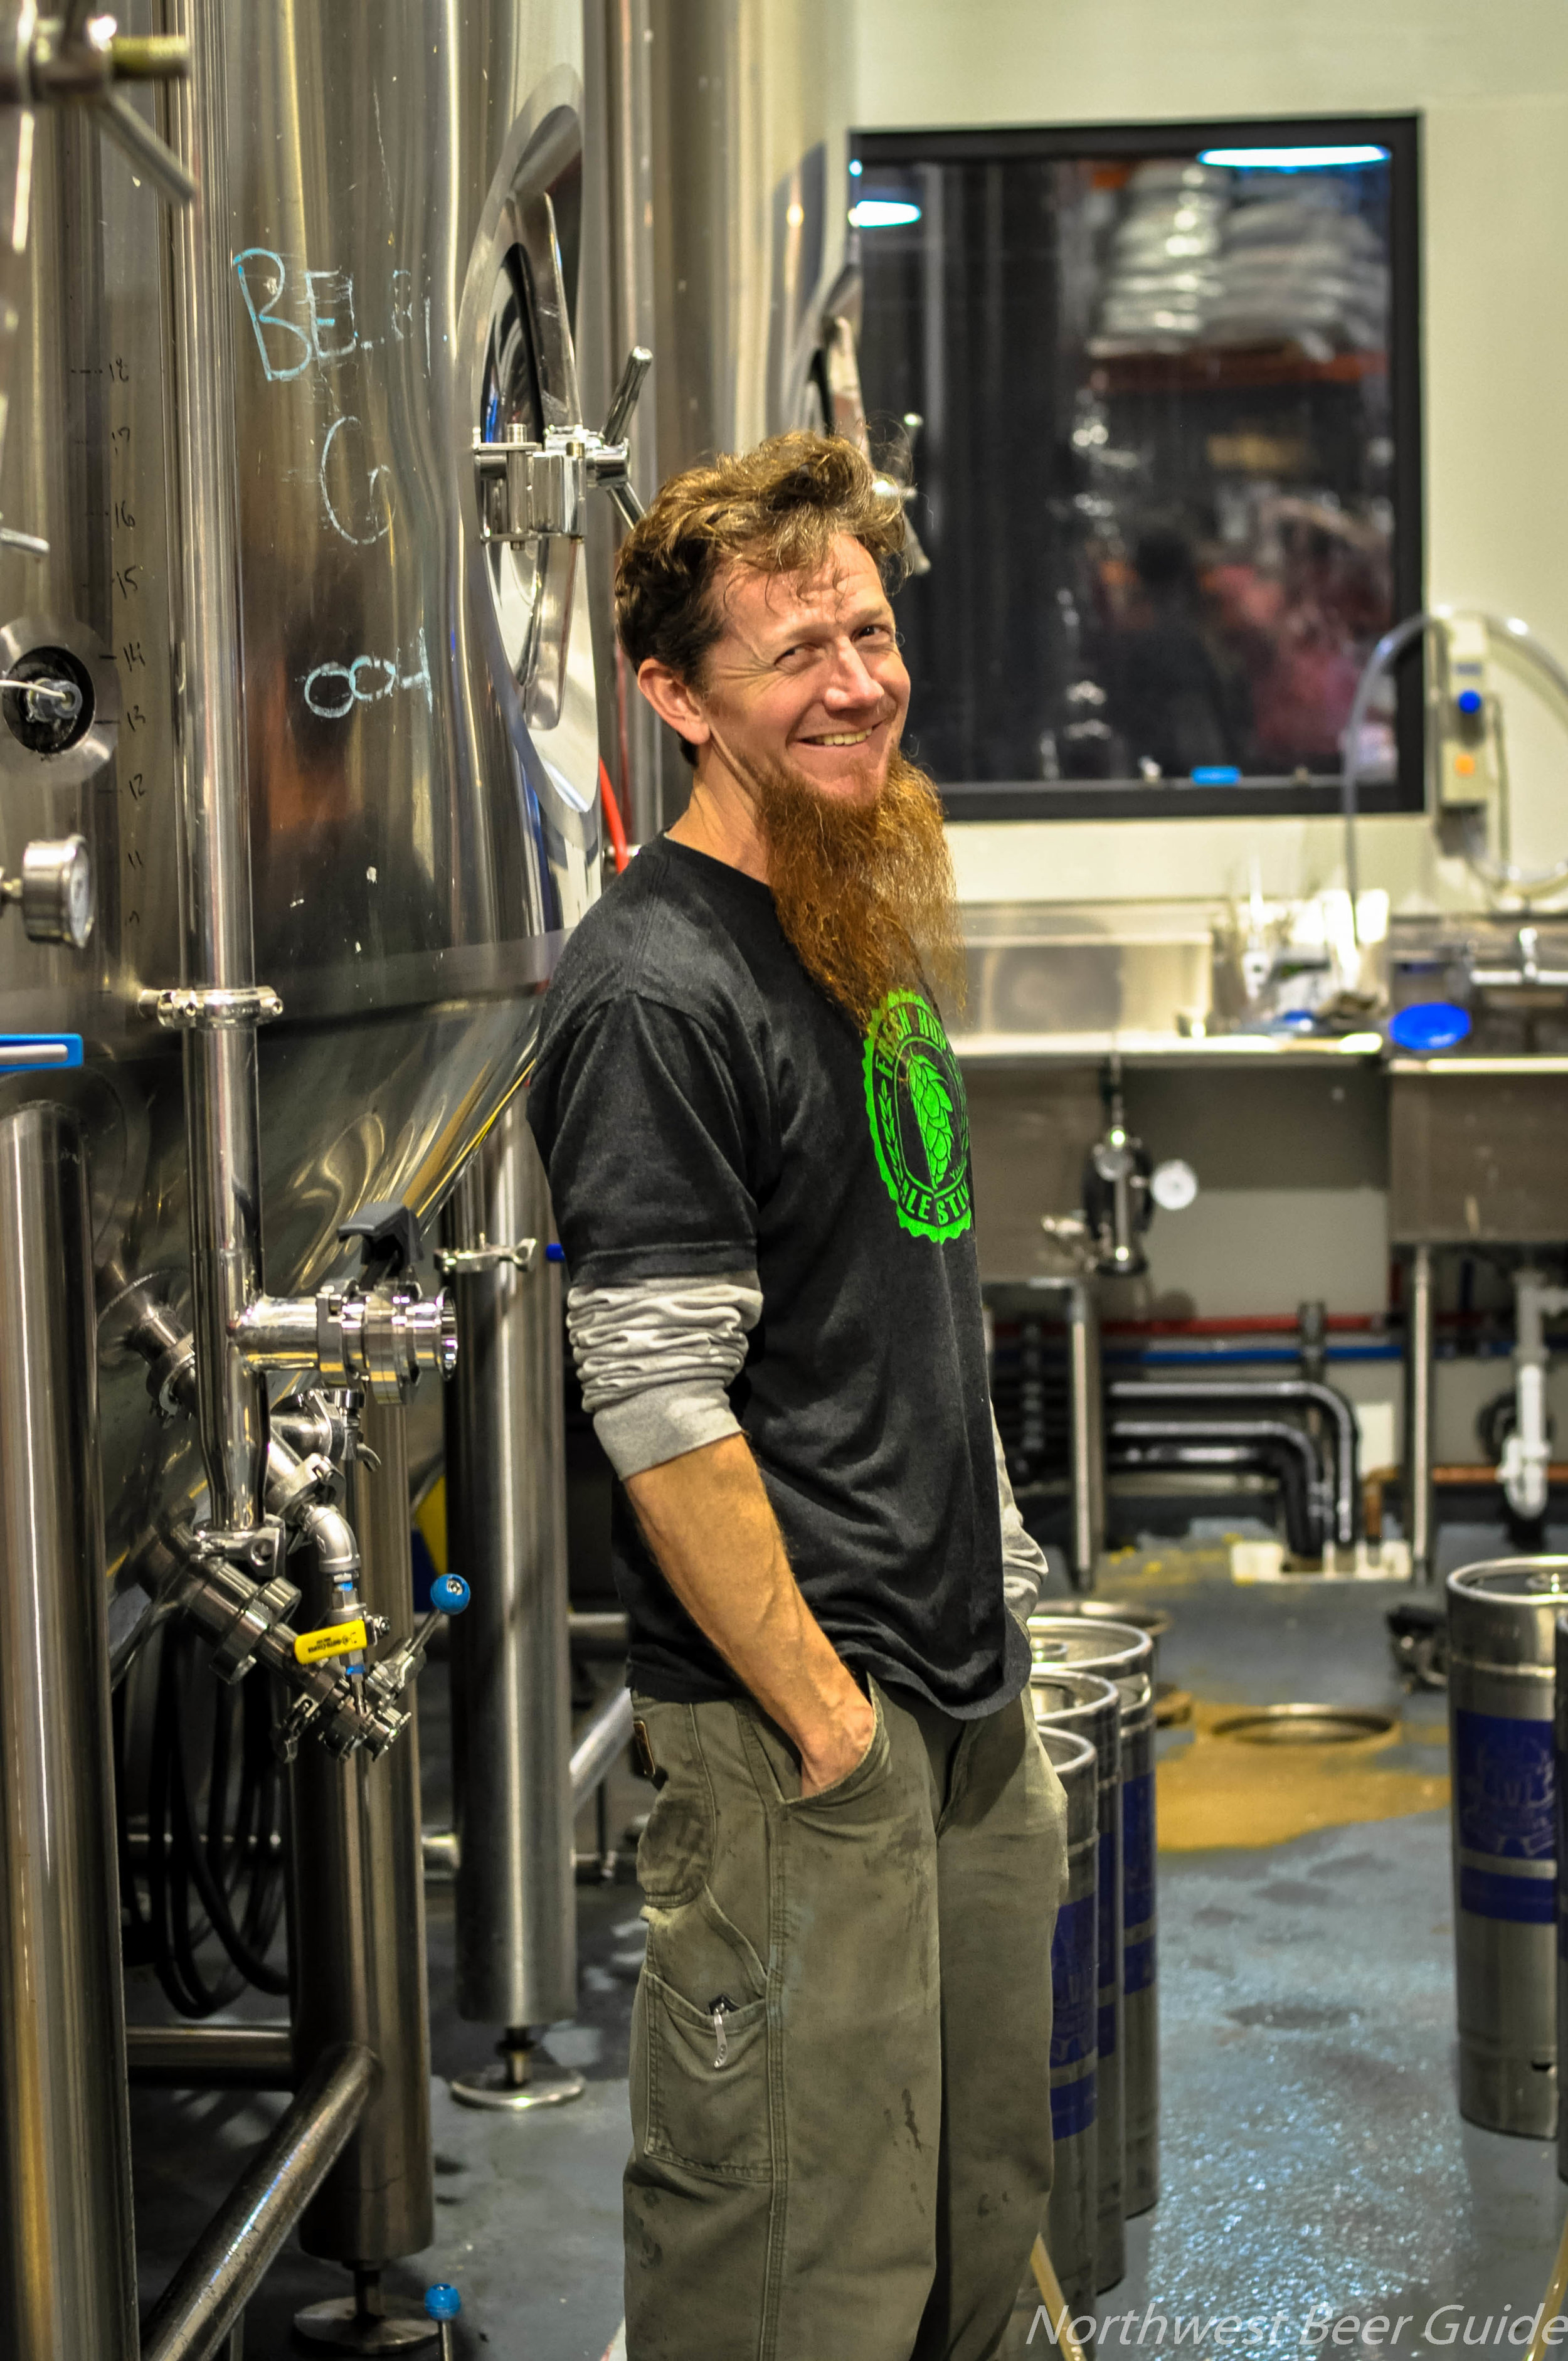 Co-Founder Kevin Watson, Head Brewer at Future Primitive Brewing Company